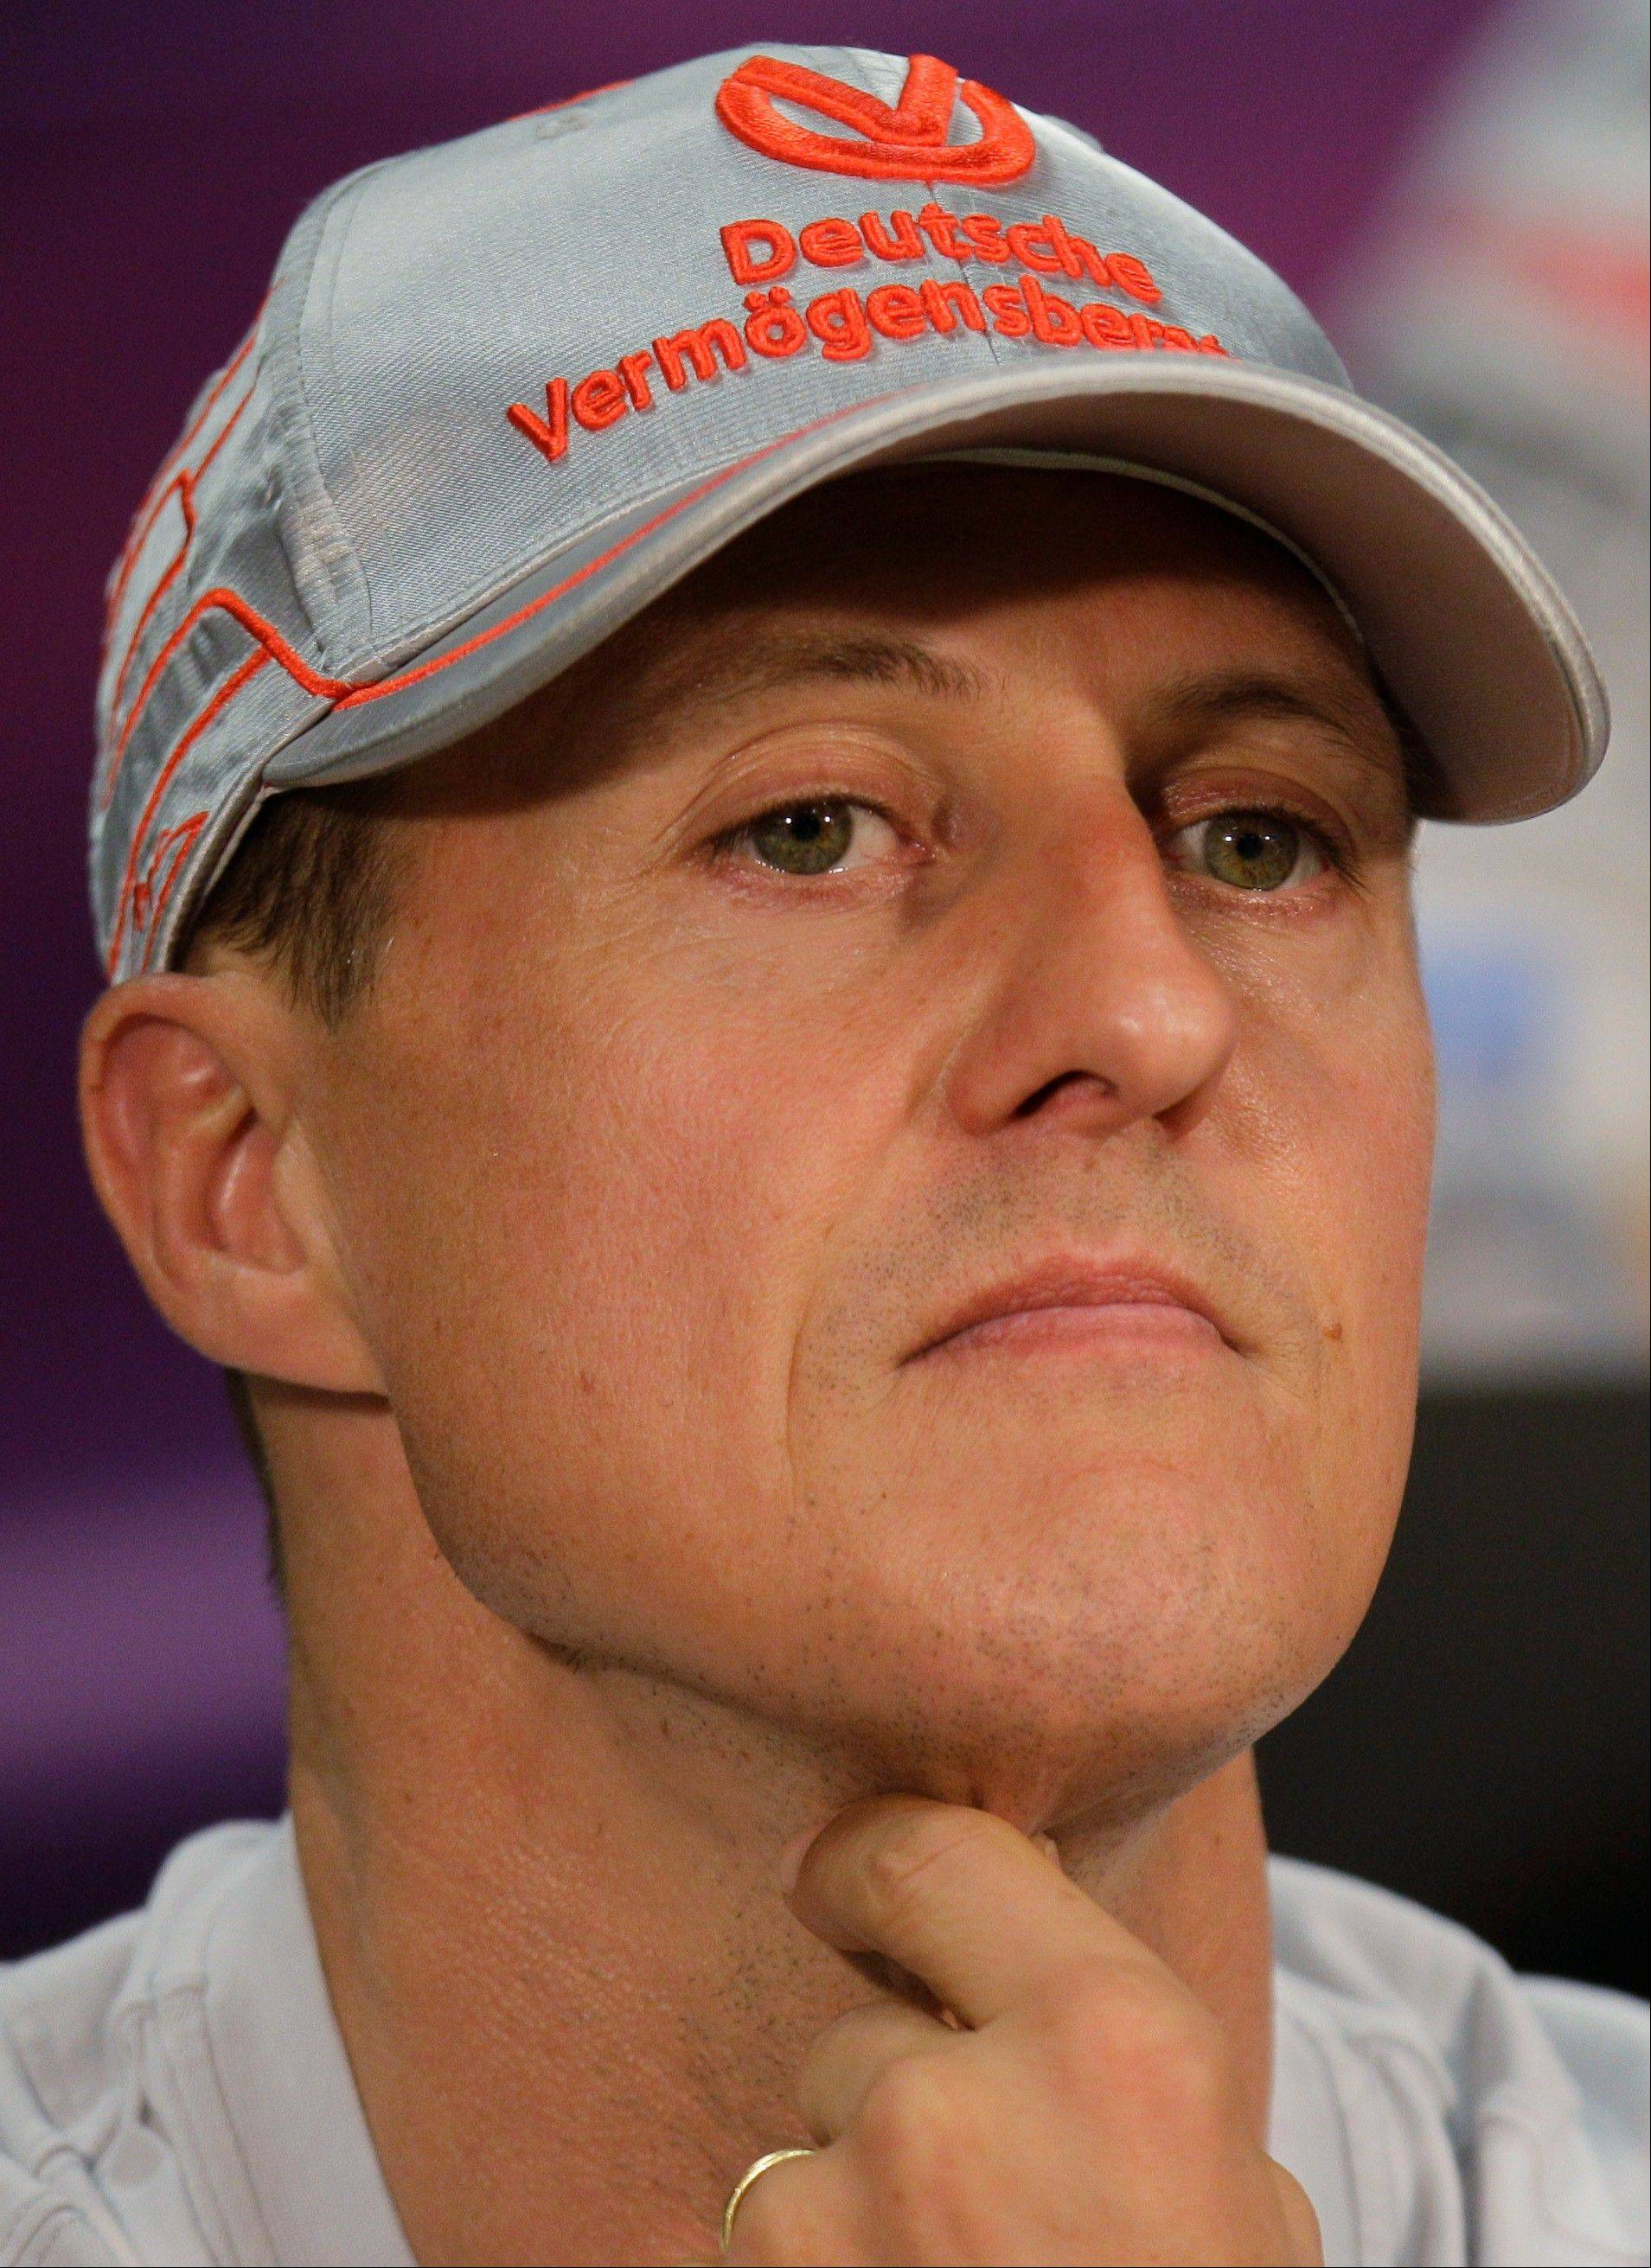 Michael Schumacher fell and struck a rock Sunday while skiing during a family vacation. He�s been placed in a medically induced coma.